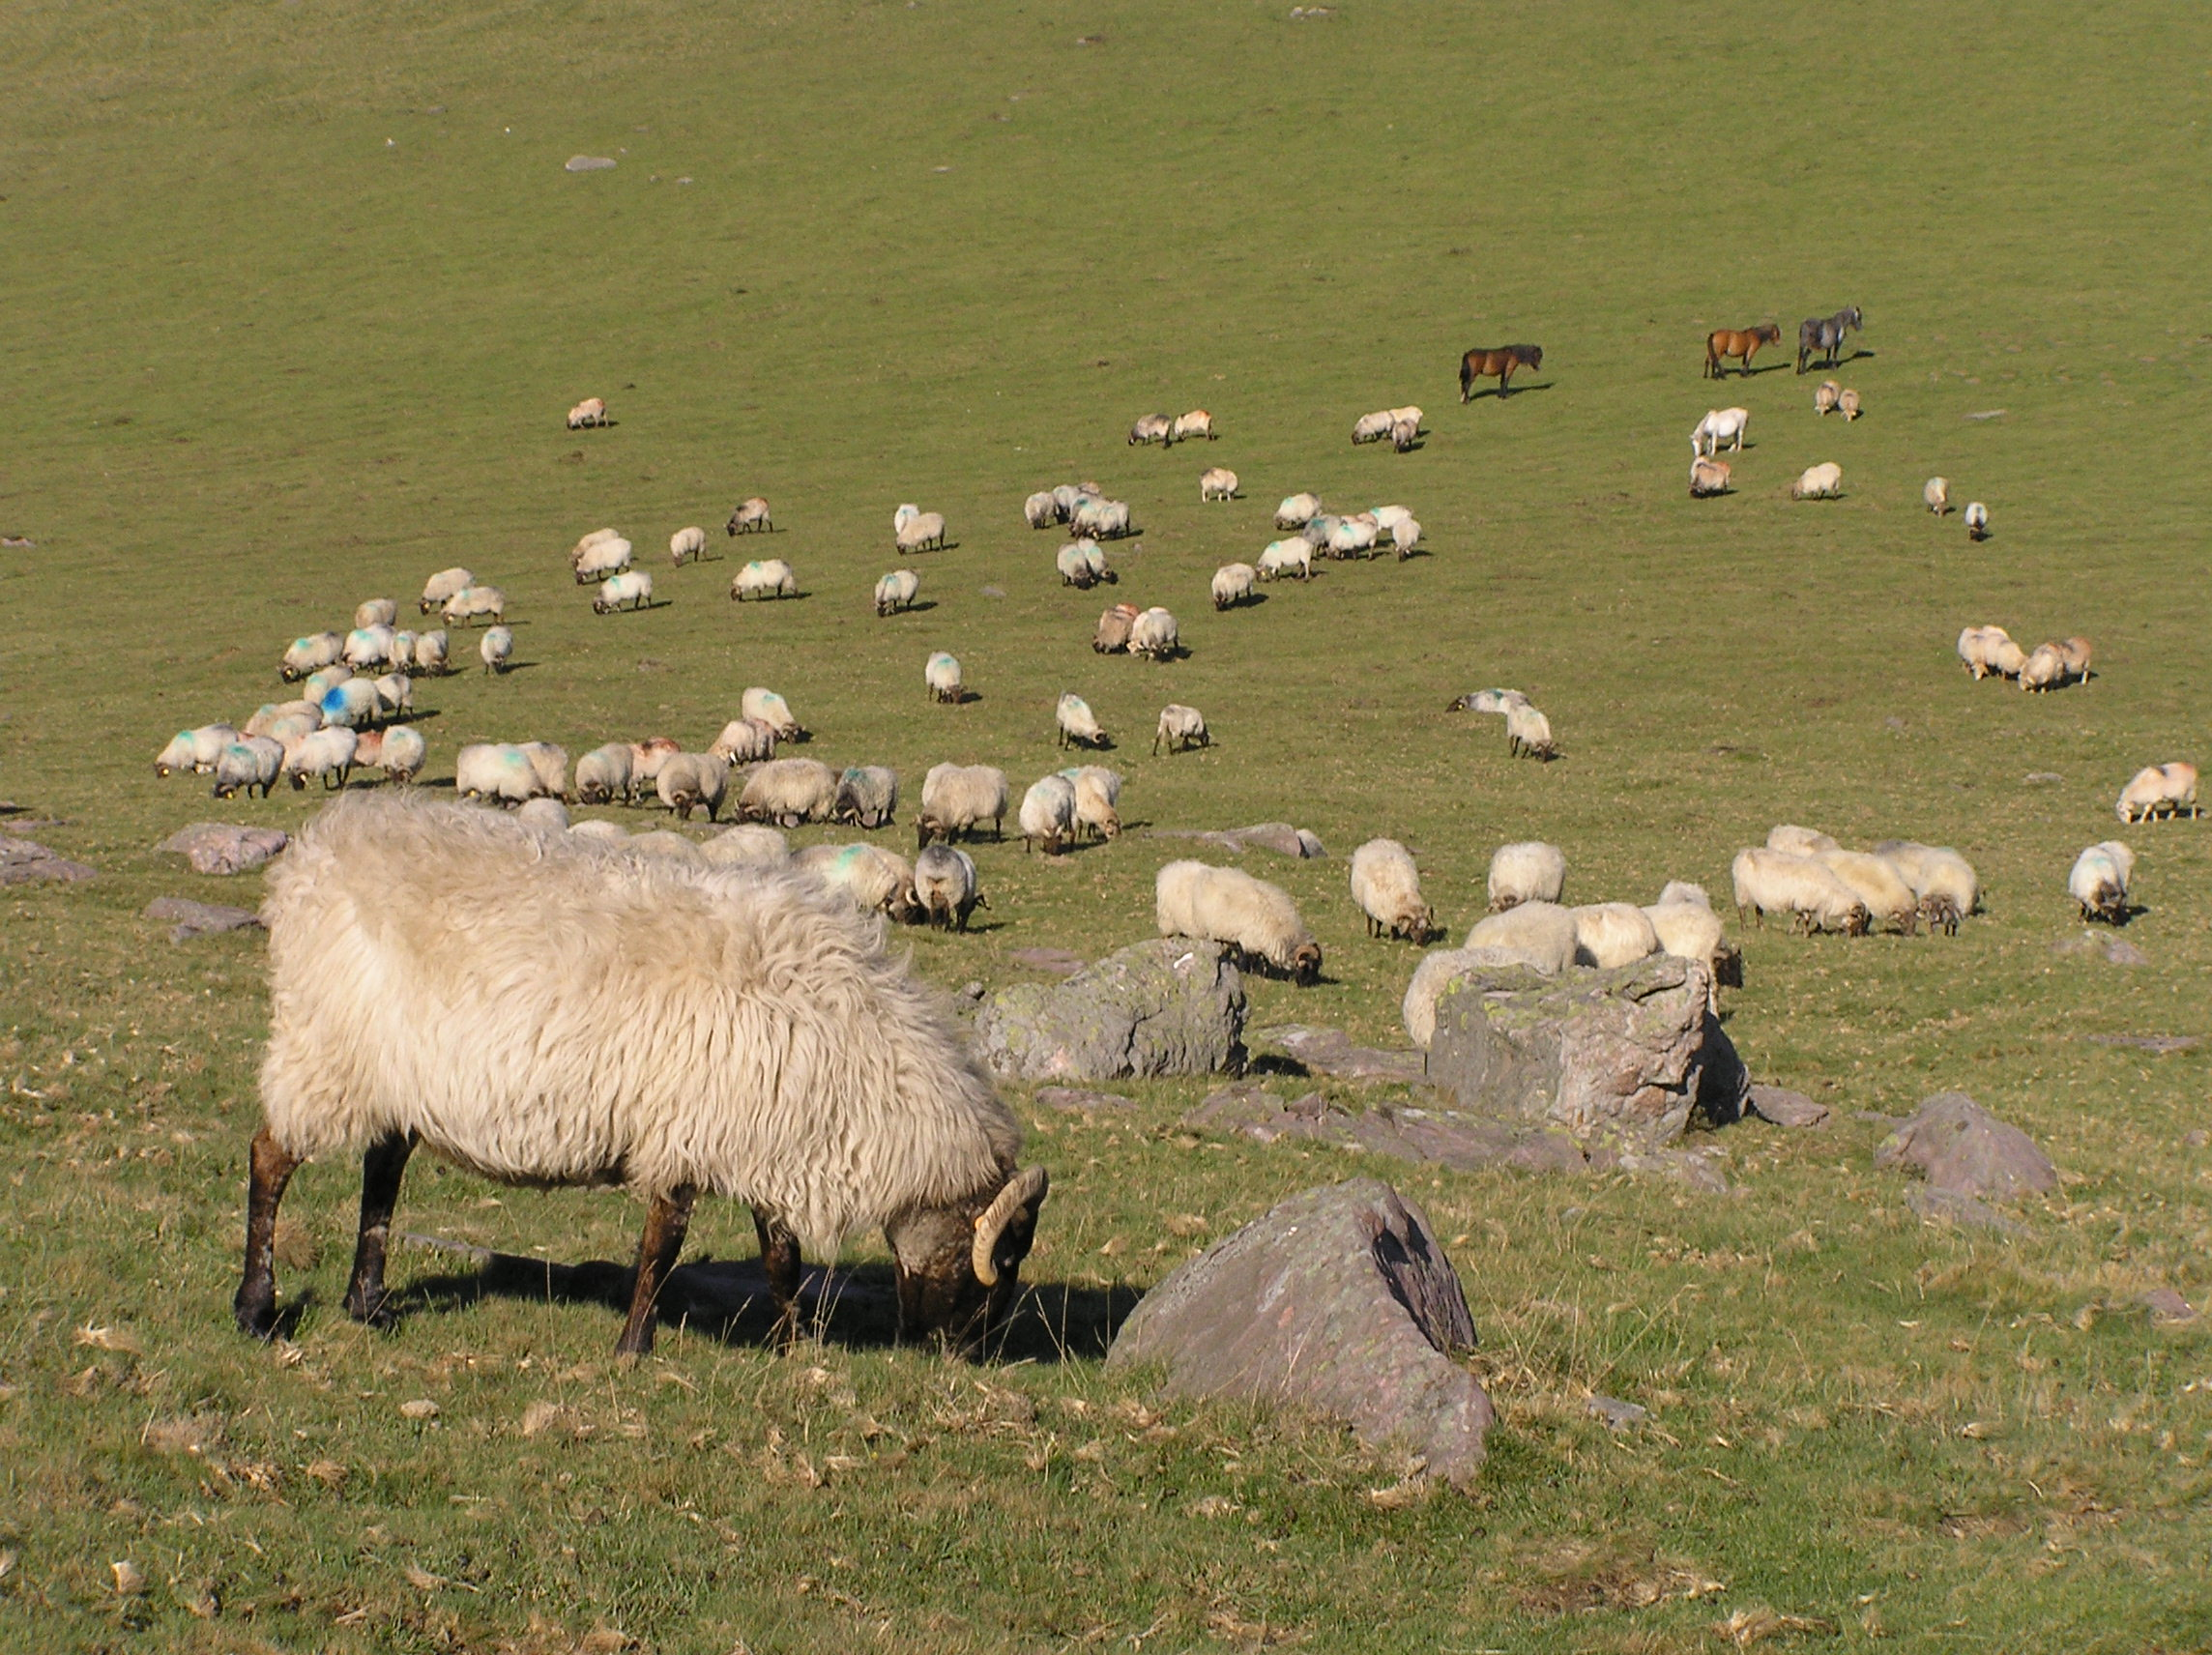 Sheep heard grazing on Violion caninae